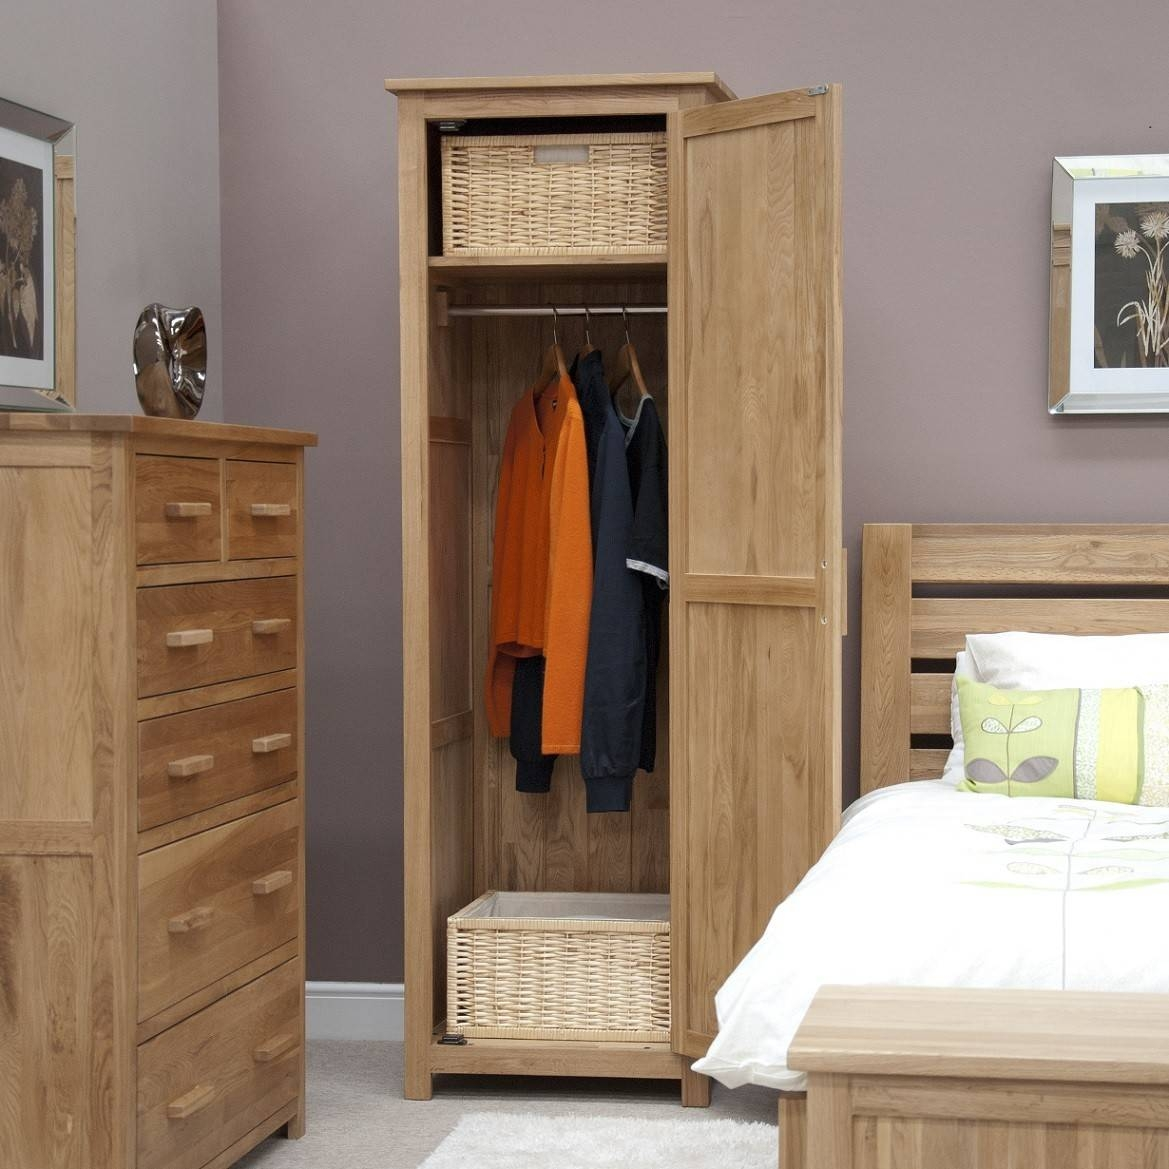 Opus Solid Oak 1 Door Single Wardrobe | Oak Furniture Uk within Single Wardrobe With Drawers And Shelves (Image 21 of 30)